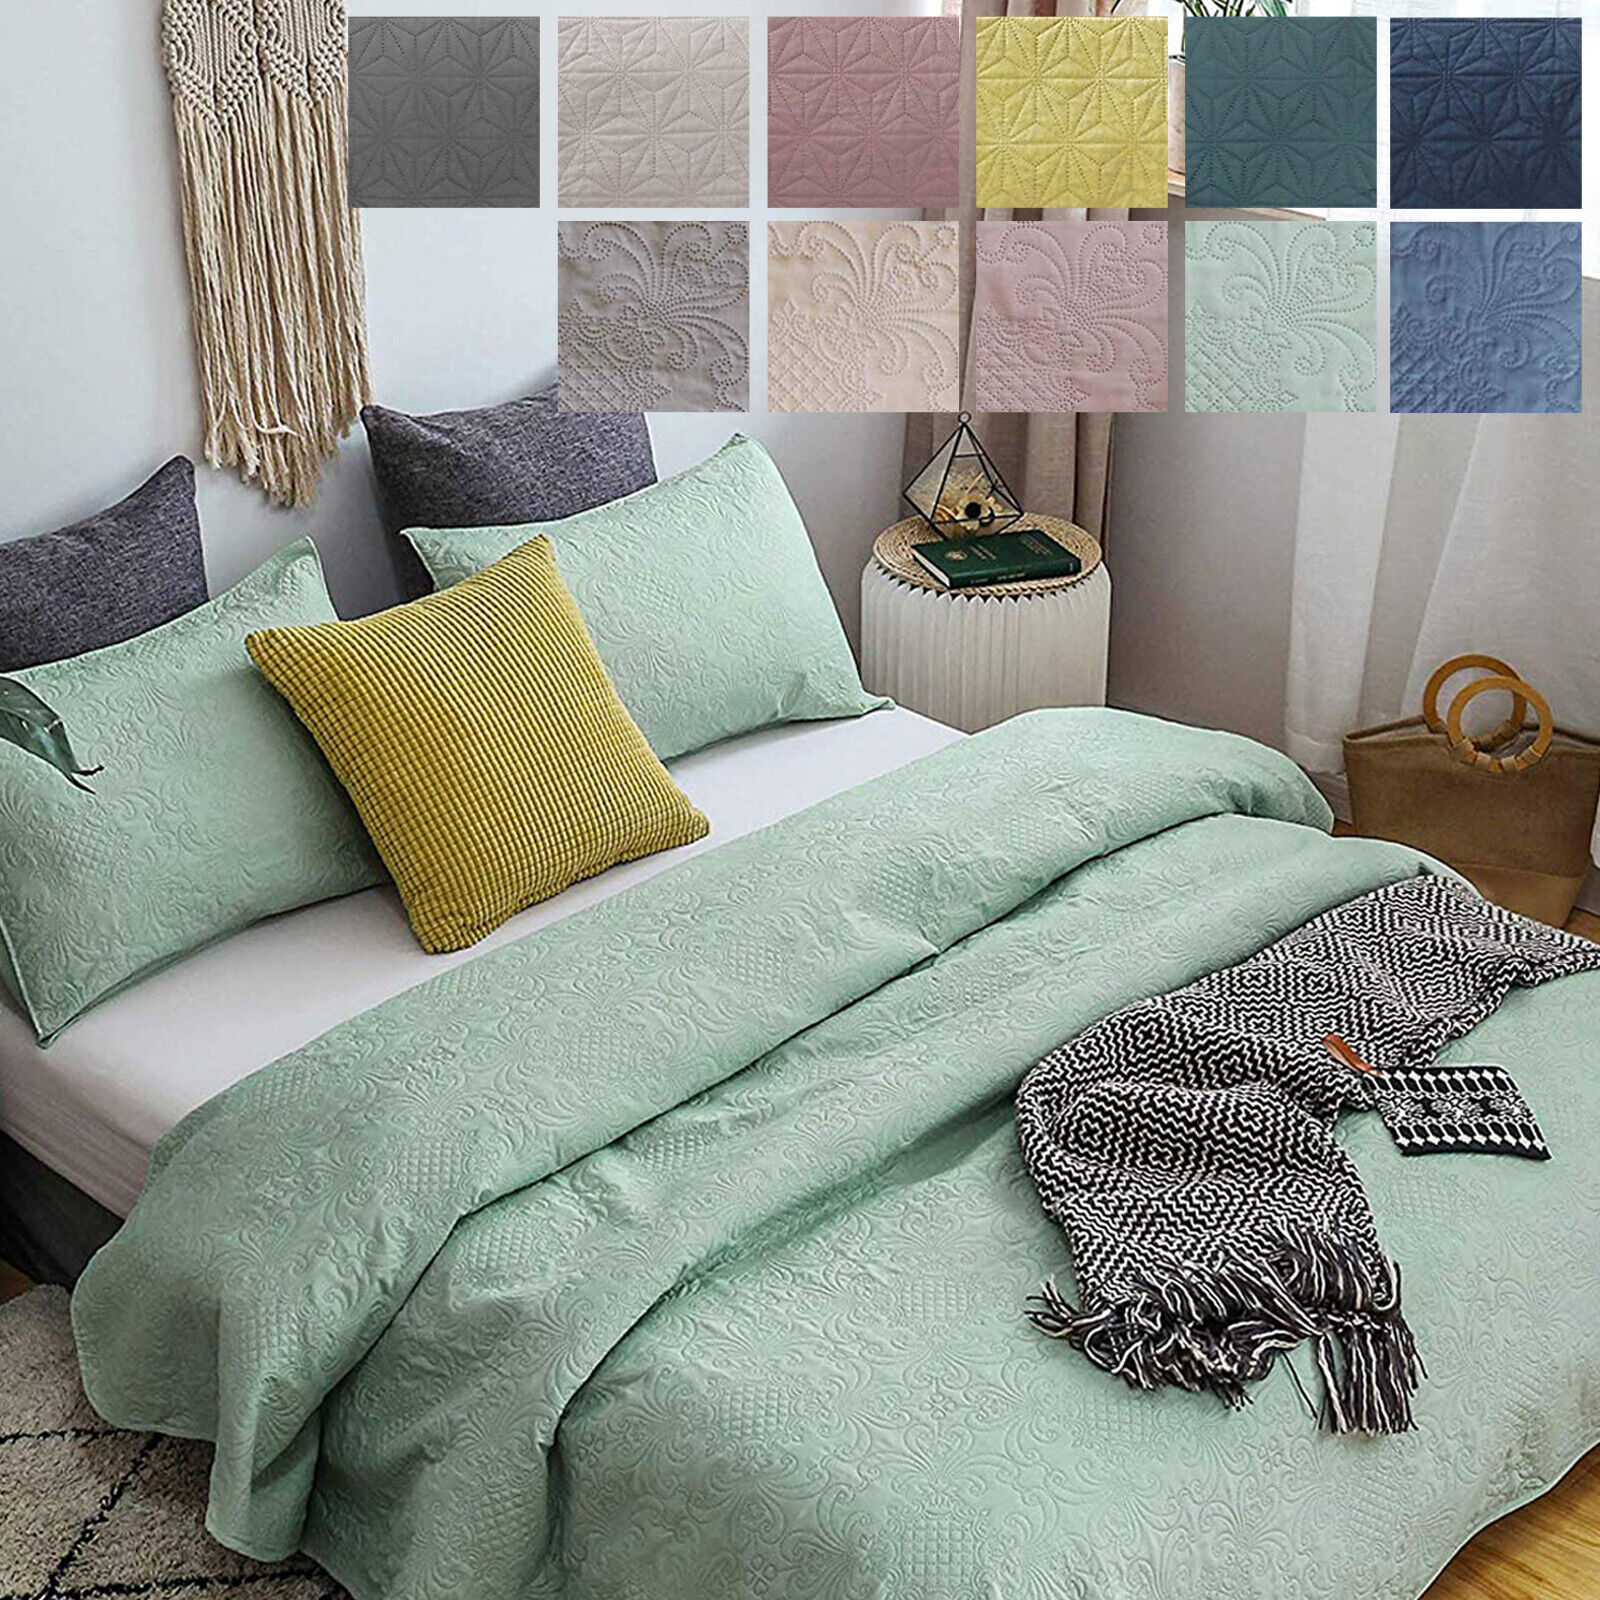 Luxury Ultra Soft Warm Microfiber Quilted Coverlet Bedding B